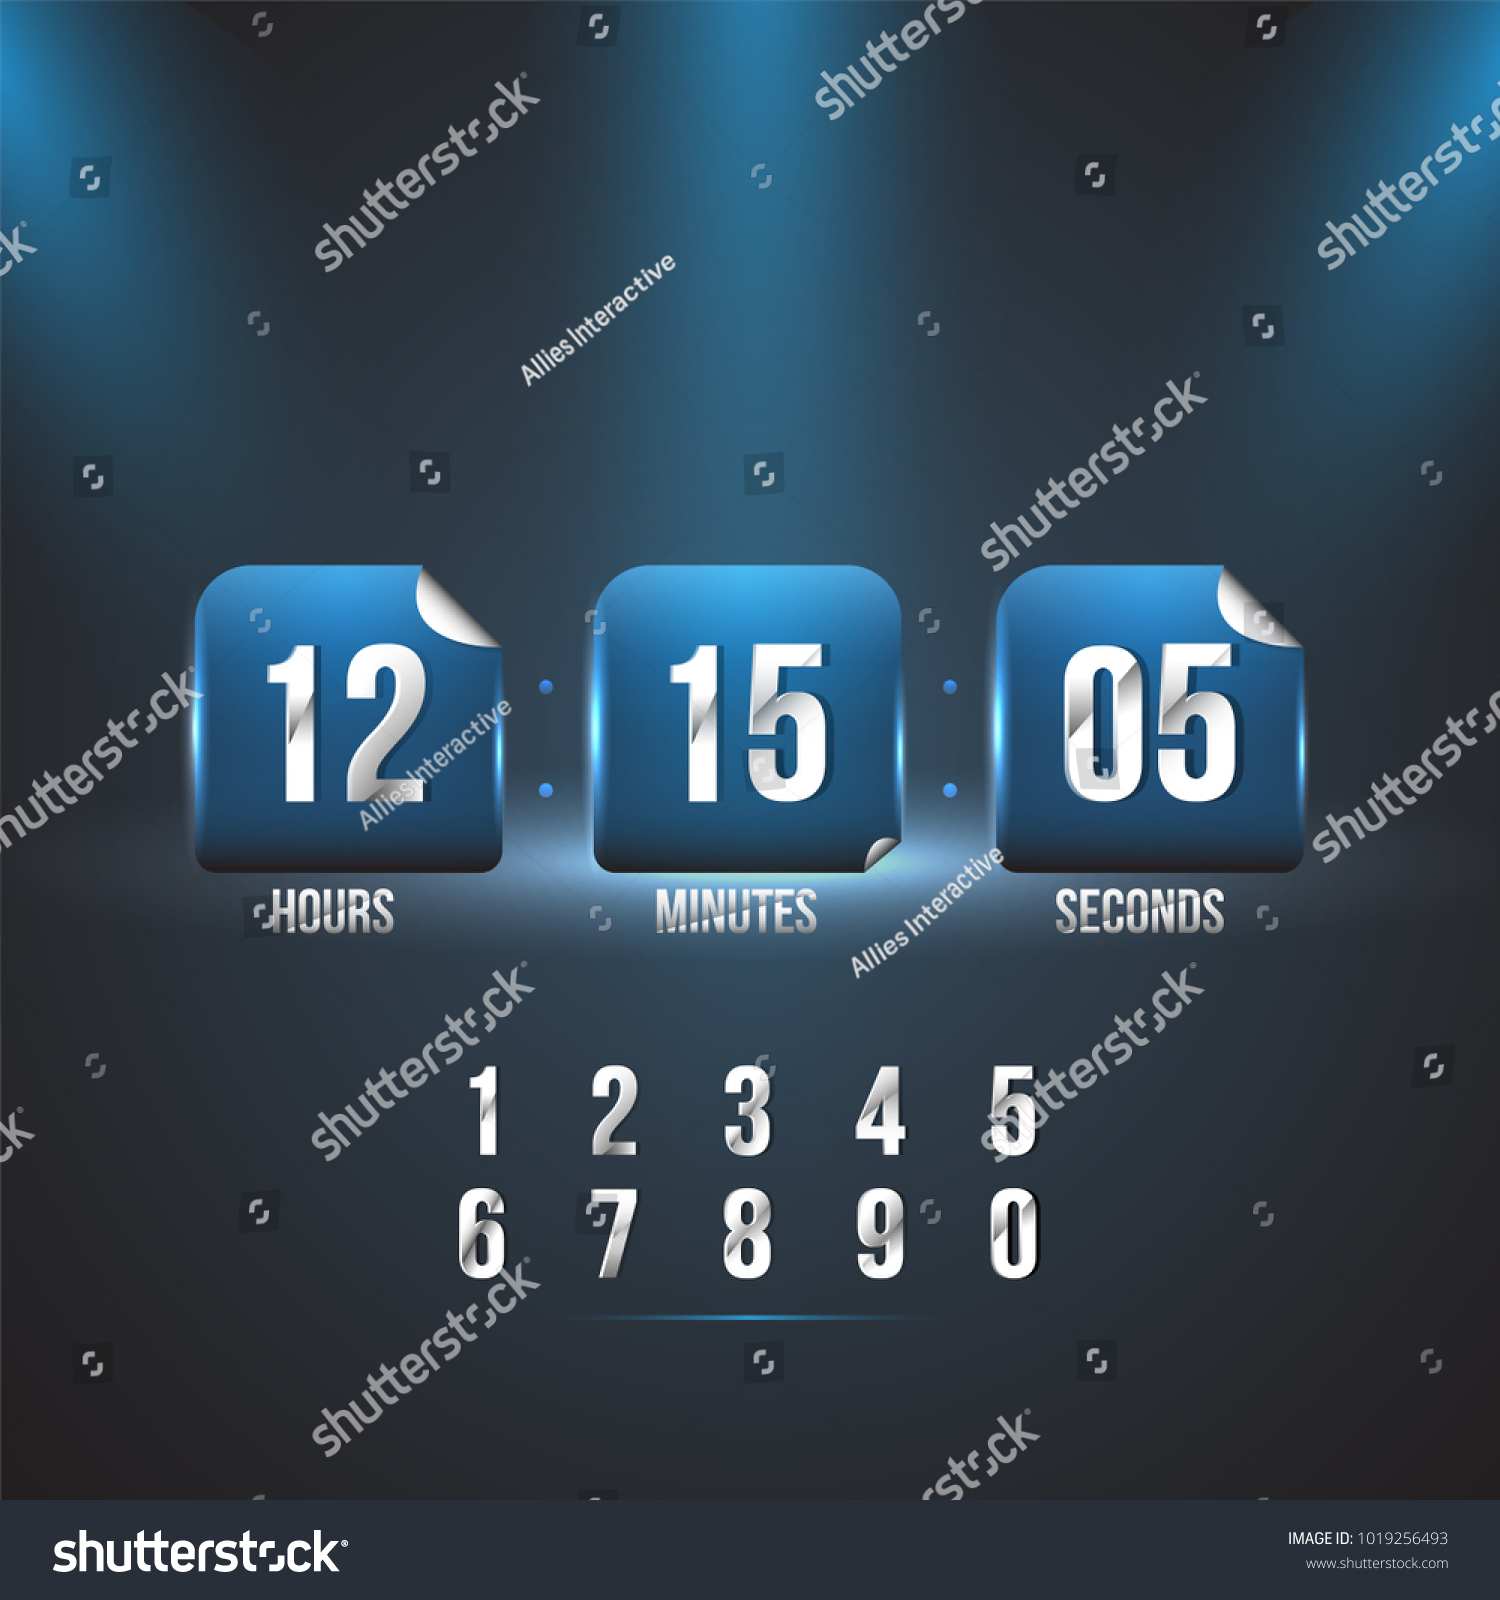 Countdown Web Site Vector Flat Template Stock Vector HD (Royalty ...